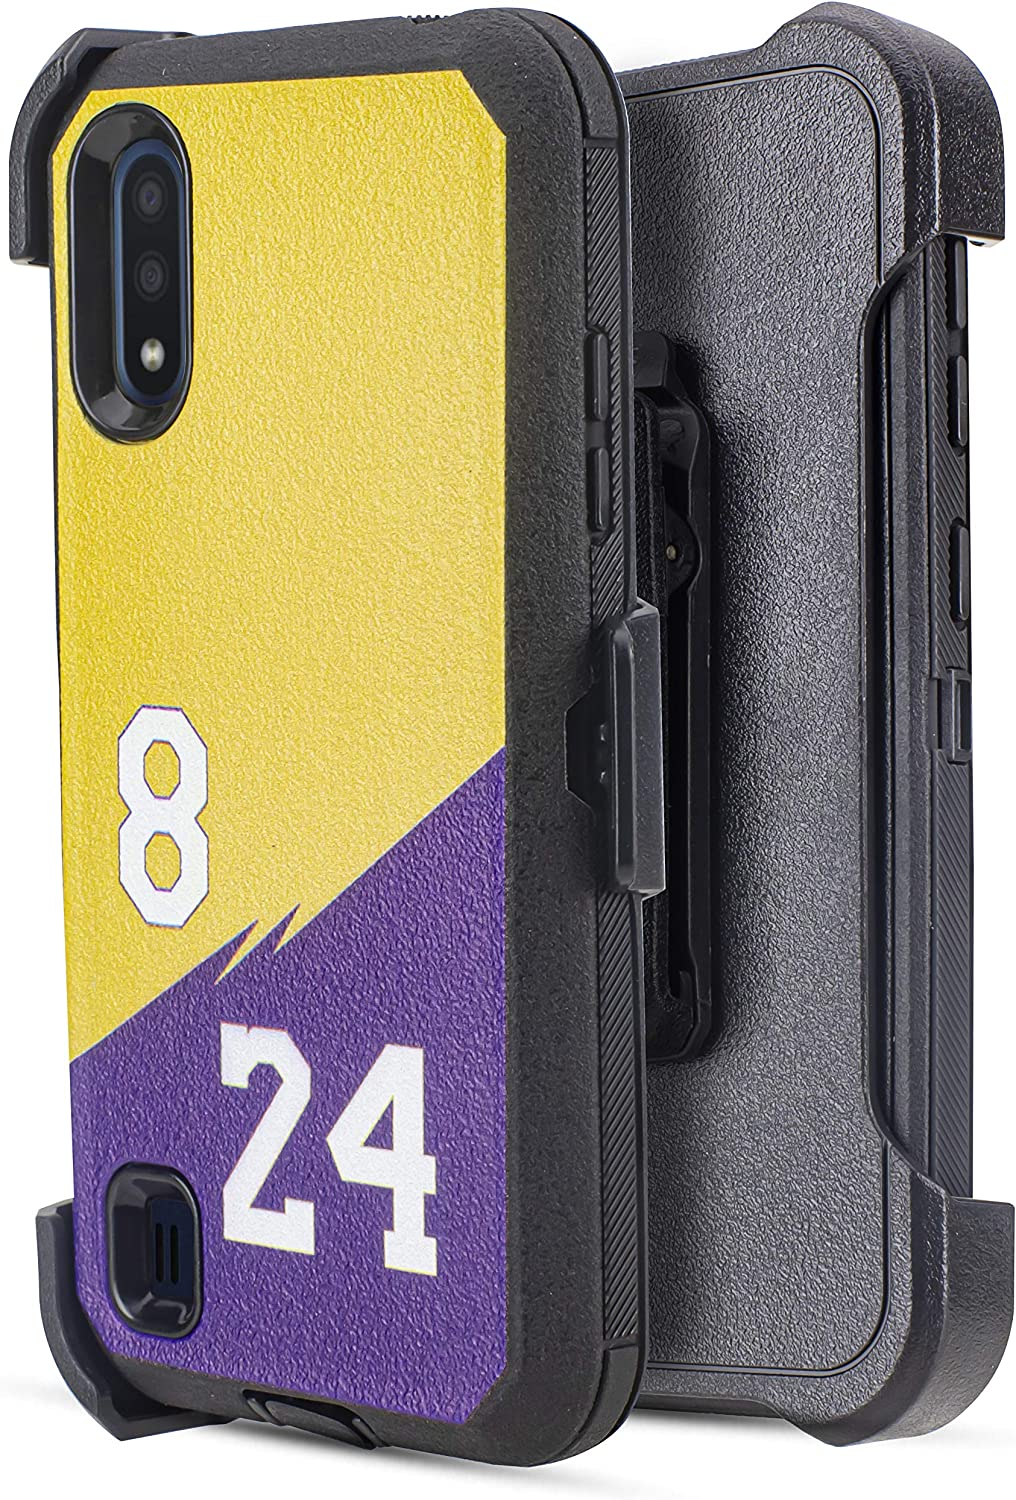 Compatible for Samsung Galaxy A01 Heavy Duty Belt Clip Case, Jackpot Wireless Case Built-in [Screen Protector] Heavy Duty Holster Cover Phone Case [Belt Clip][Kickstand] (8/24)